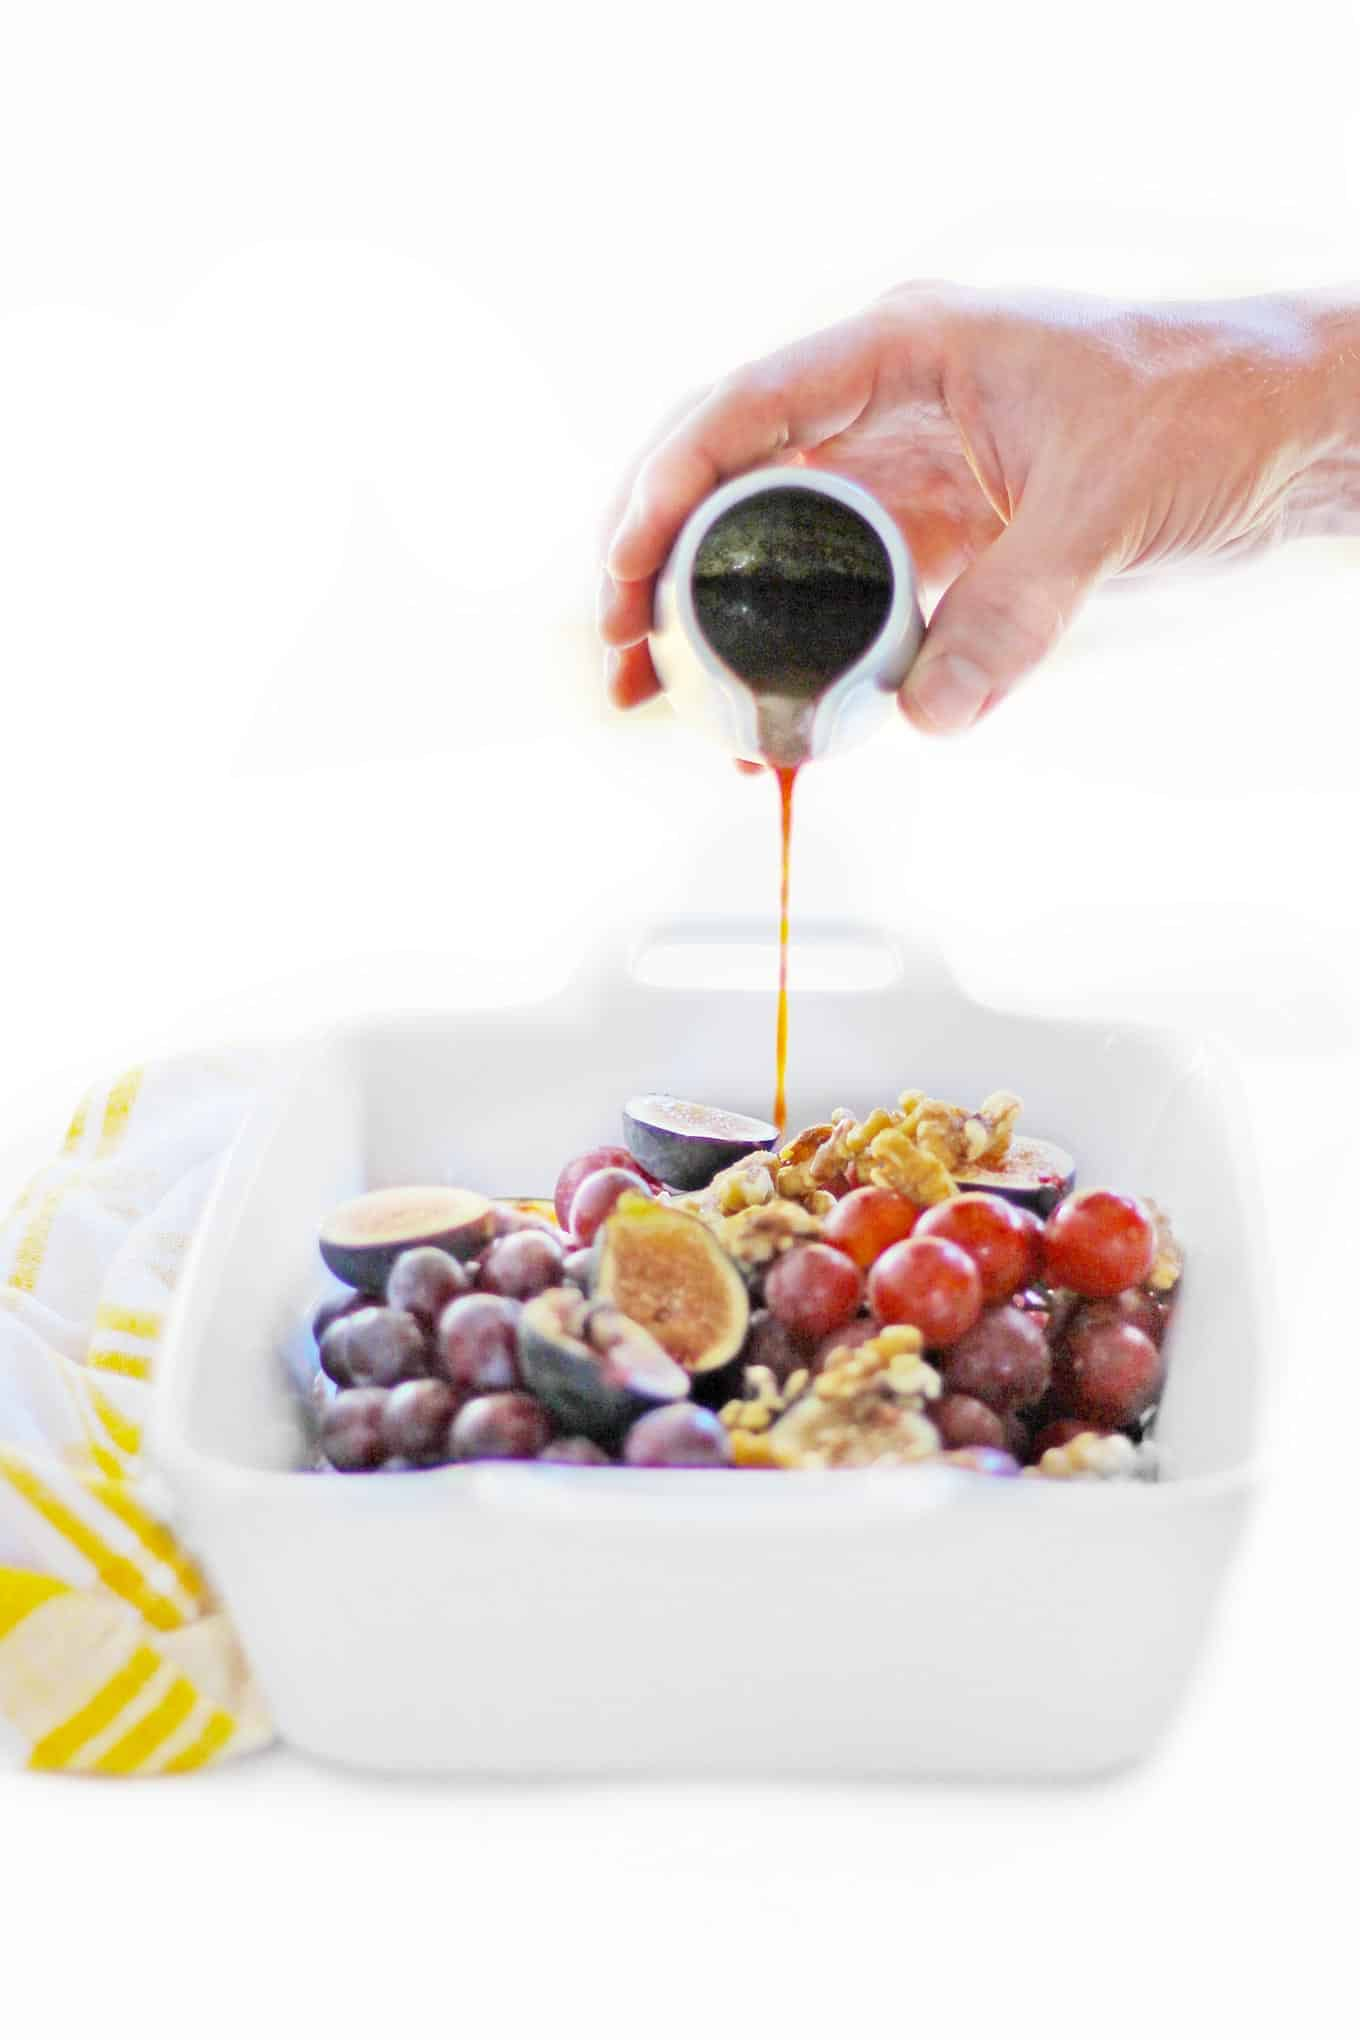 drizzling syrup on fruit